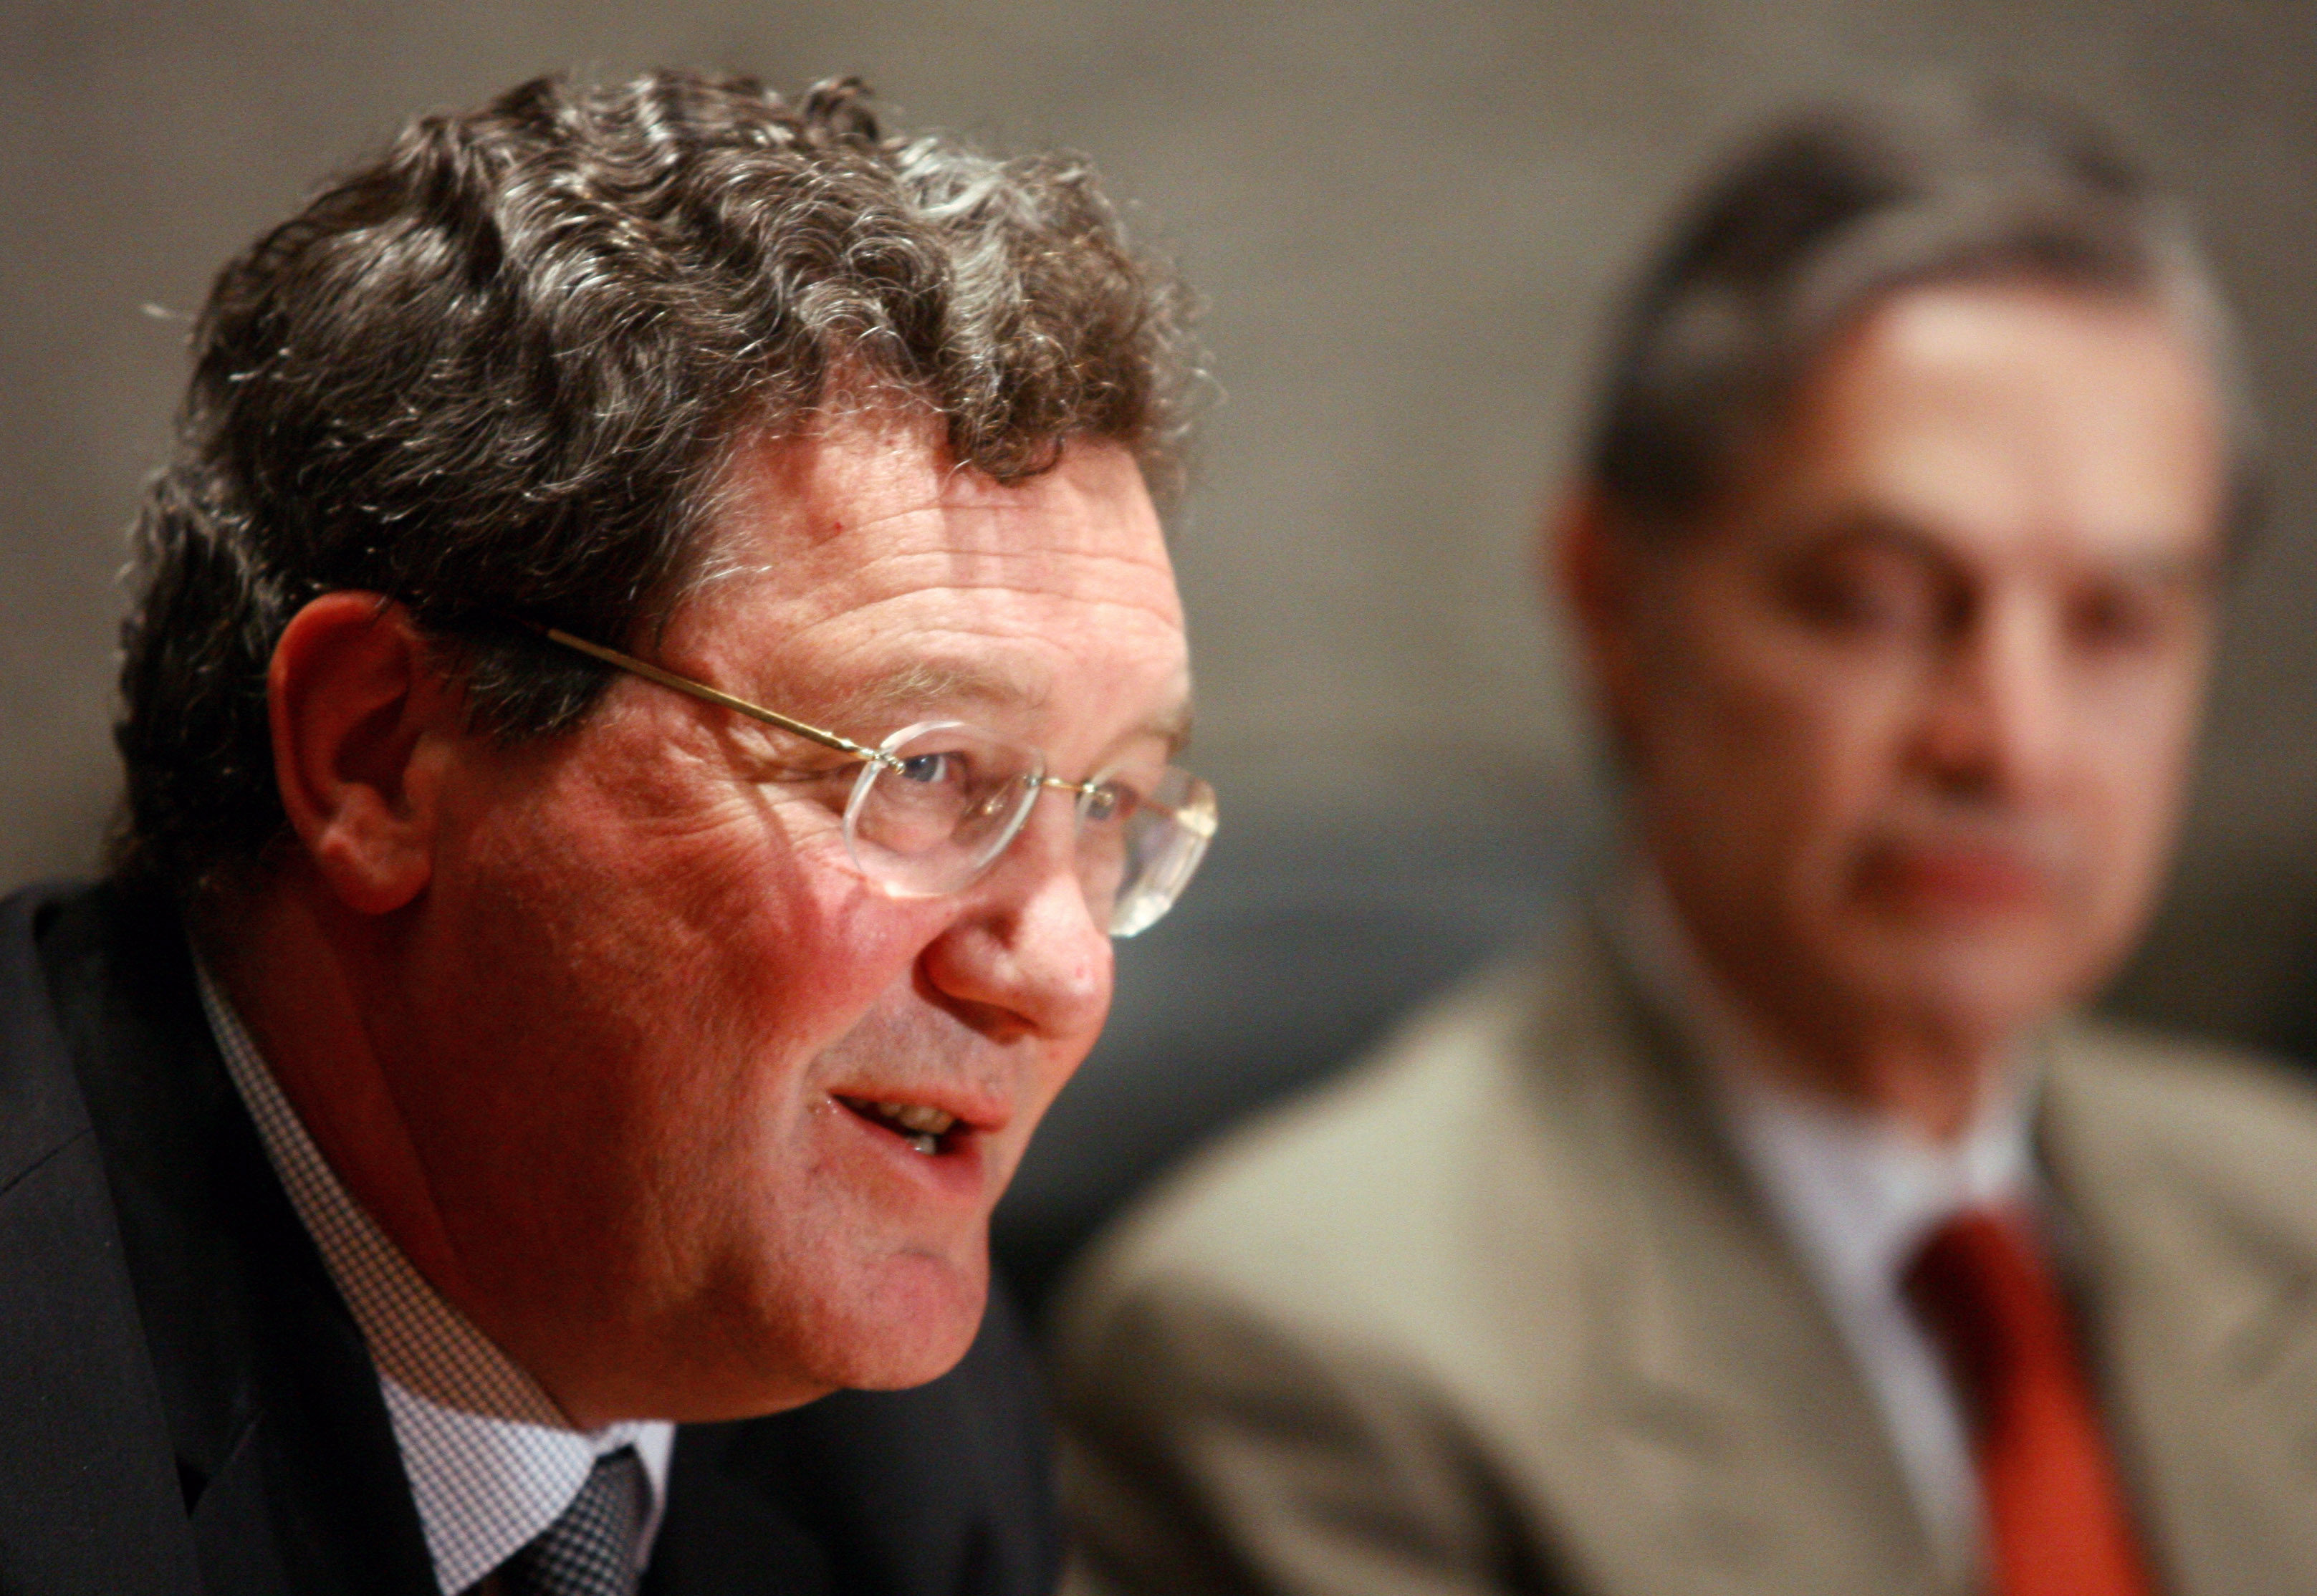 Australia's foreign minister Alexander Downer (L) speaks as his Mexican counterpart Luis Ernesto Derbez listens during a joint news conference at the foreign ministry in Mexico City January 6, 2005. The ministers announced that a committee of experts will be set up to research the possibility of a free trade agreement between the two countries. REUTERS/Andrew Winning